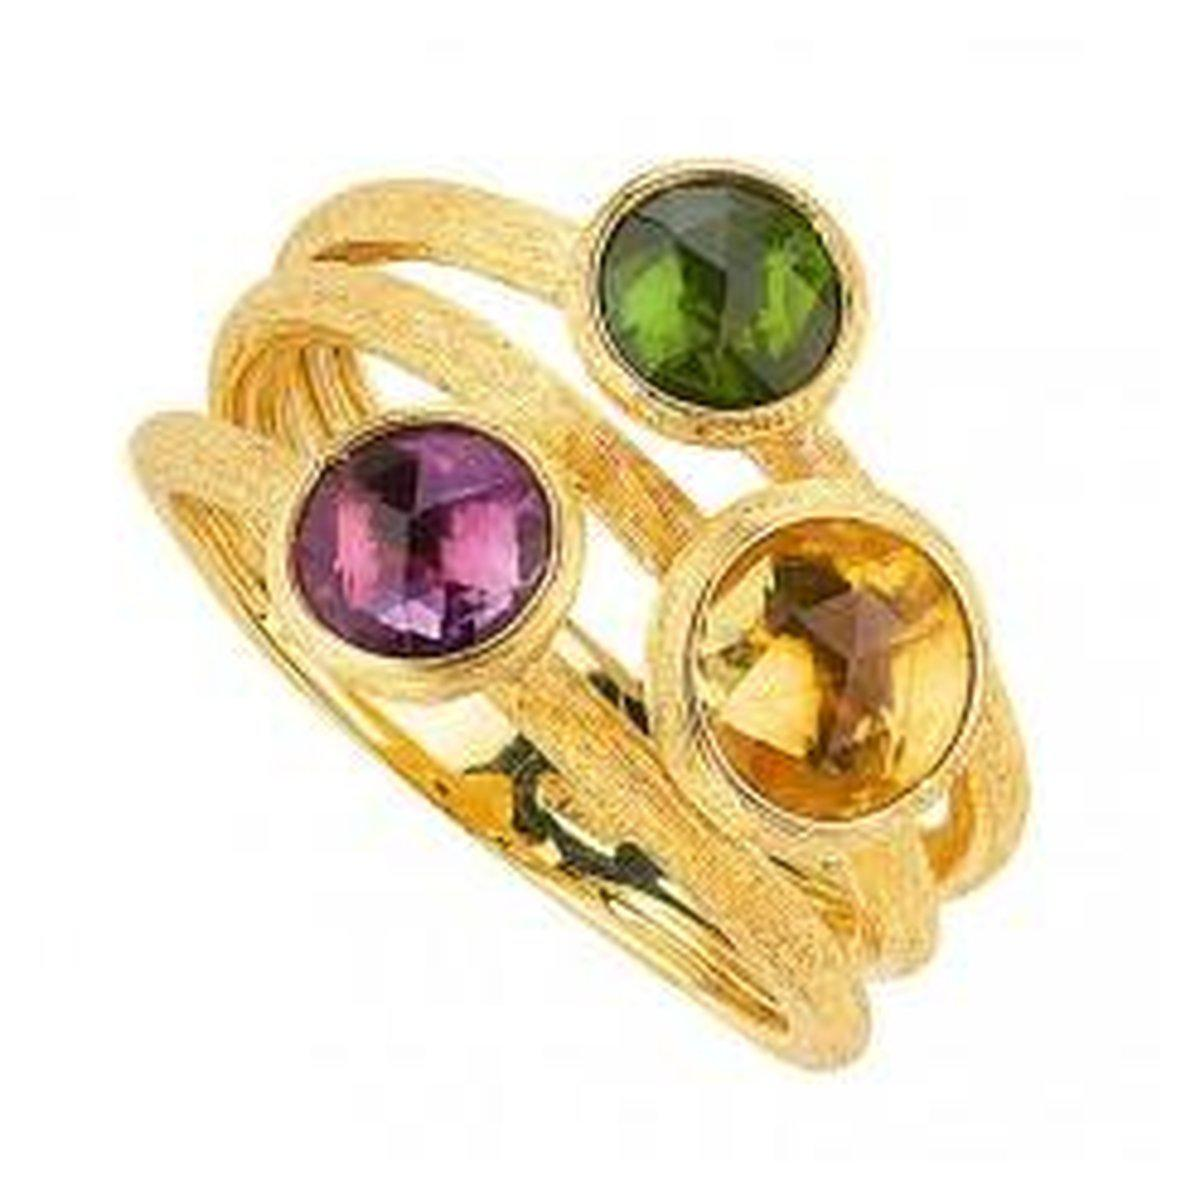 18K Jaipur Amethyst Citrine Tourmaline Ring - AB474 MIX208 Y-Marco Bicego-Renee Taylor Gallery